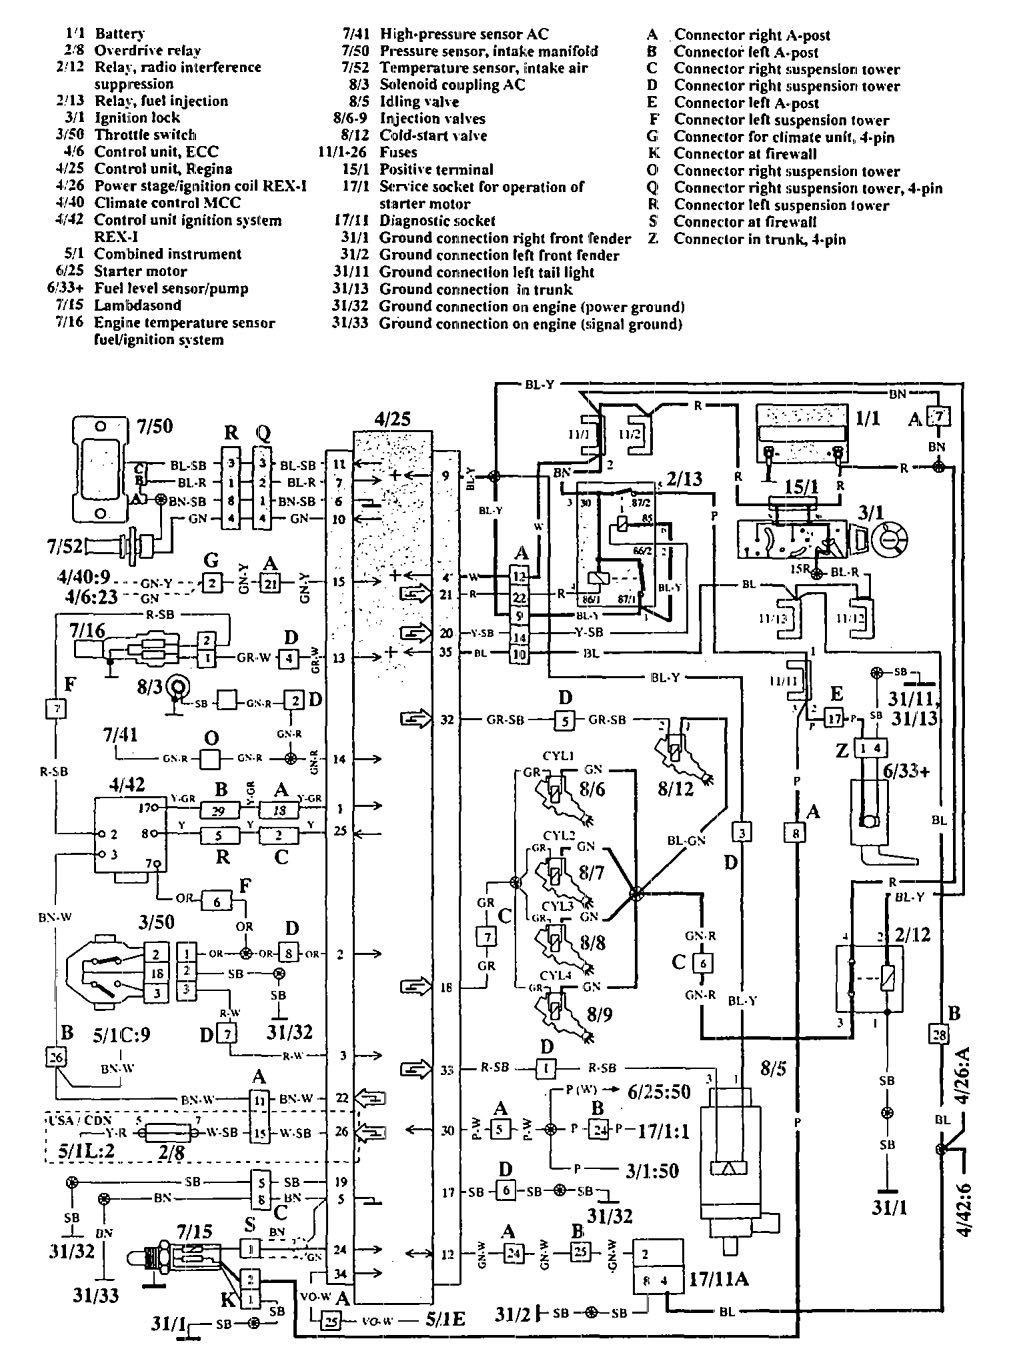 Wiring Diagram Volvo S40 1997 | Wiring Diagram on volvo s40 body, volvo amazon wiring diagram, volvo s40 engine diagram, volvo s40 engine removal, volvo s40 brochure, volvo s40 speaker, volvo ignition wiring diagram, volvo s40 frame, volvo s40 valve cover removal, volvo s40 vacuum diagram, volvo s40 antenna, volvo s40 steering diagram, volvo s40 firing order, volvo s40 ignition switch, volvo s40 engine problems, volvo s40 stereo diagram, volvo s40 relay location, volvo s40 thermostat, volvo s40 coolant diagram, volvo s40 starter,